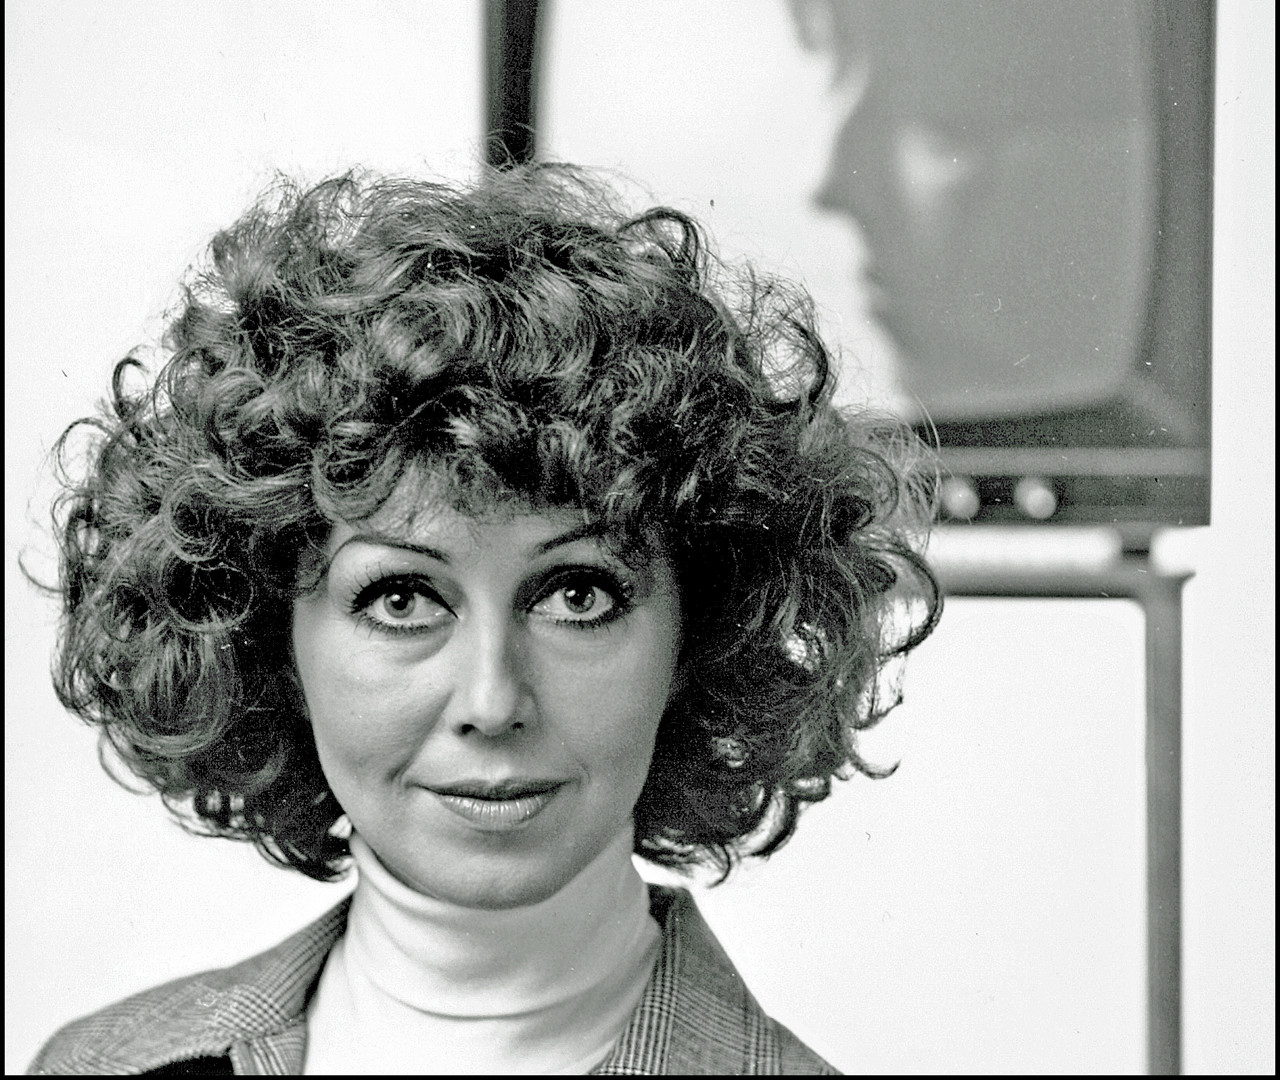 16  Lenita Airisto. Tv-hostess. Helsinki 1977